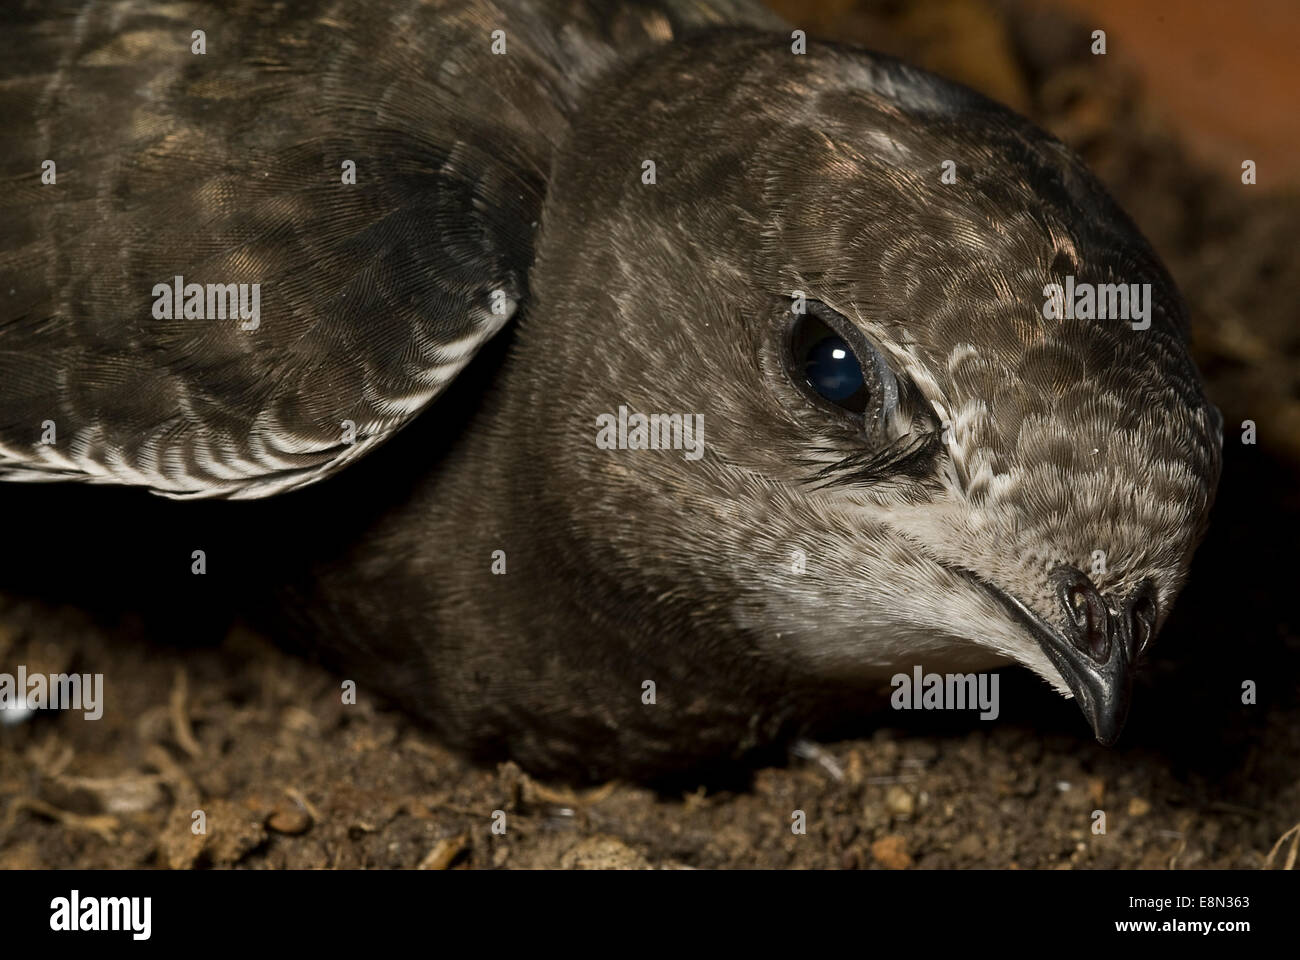 Common Swift Apus apus, Apodidae, Lazio, Italy - Stock Image